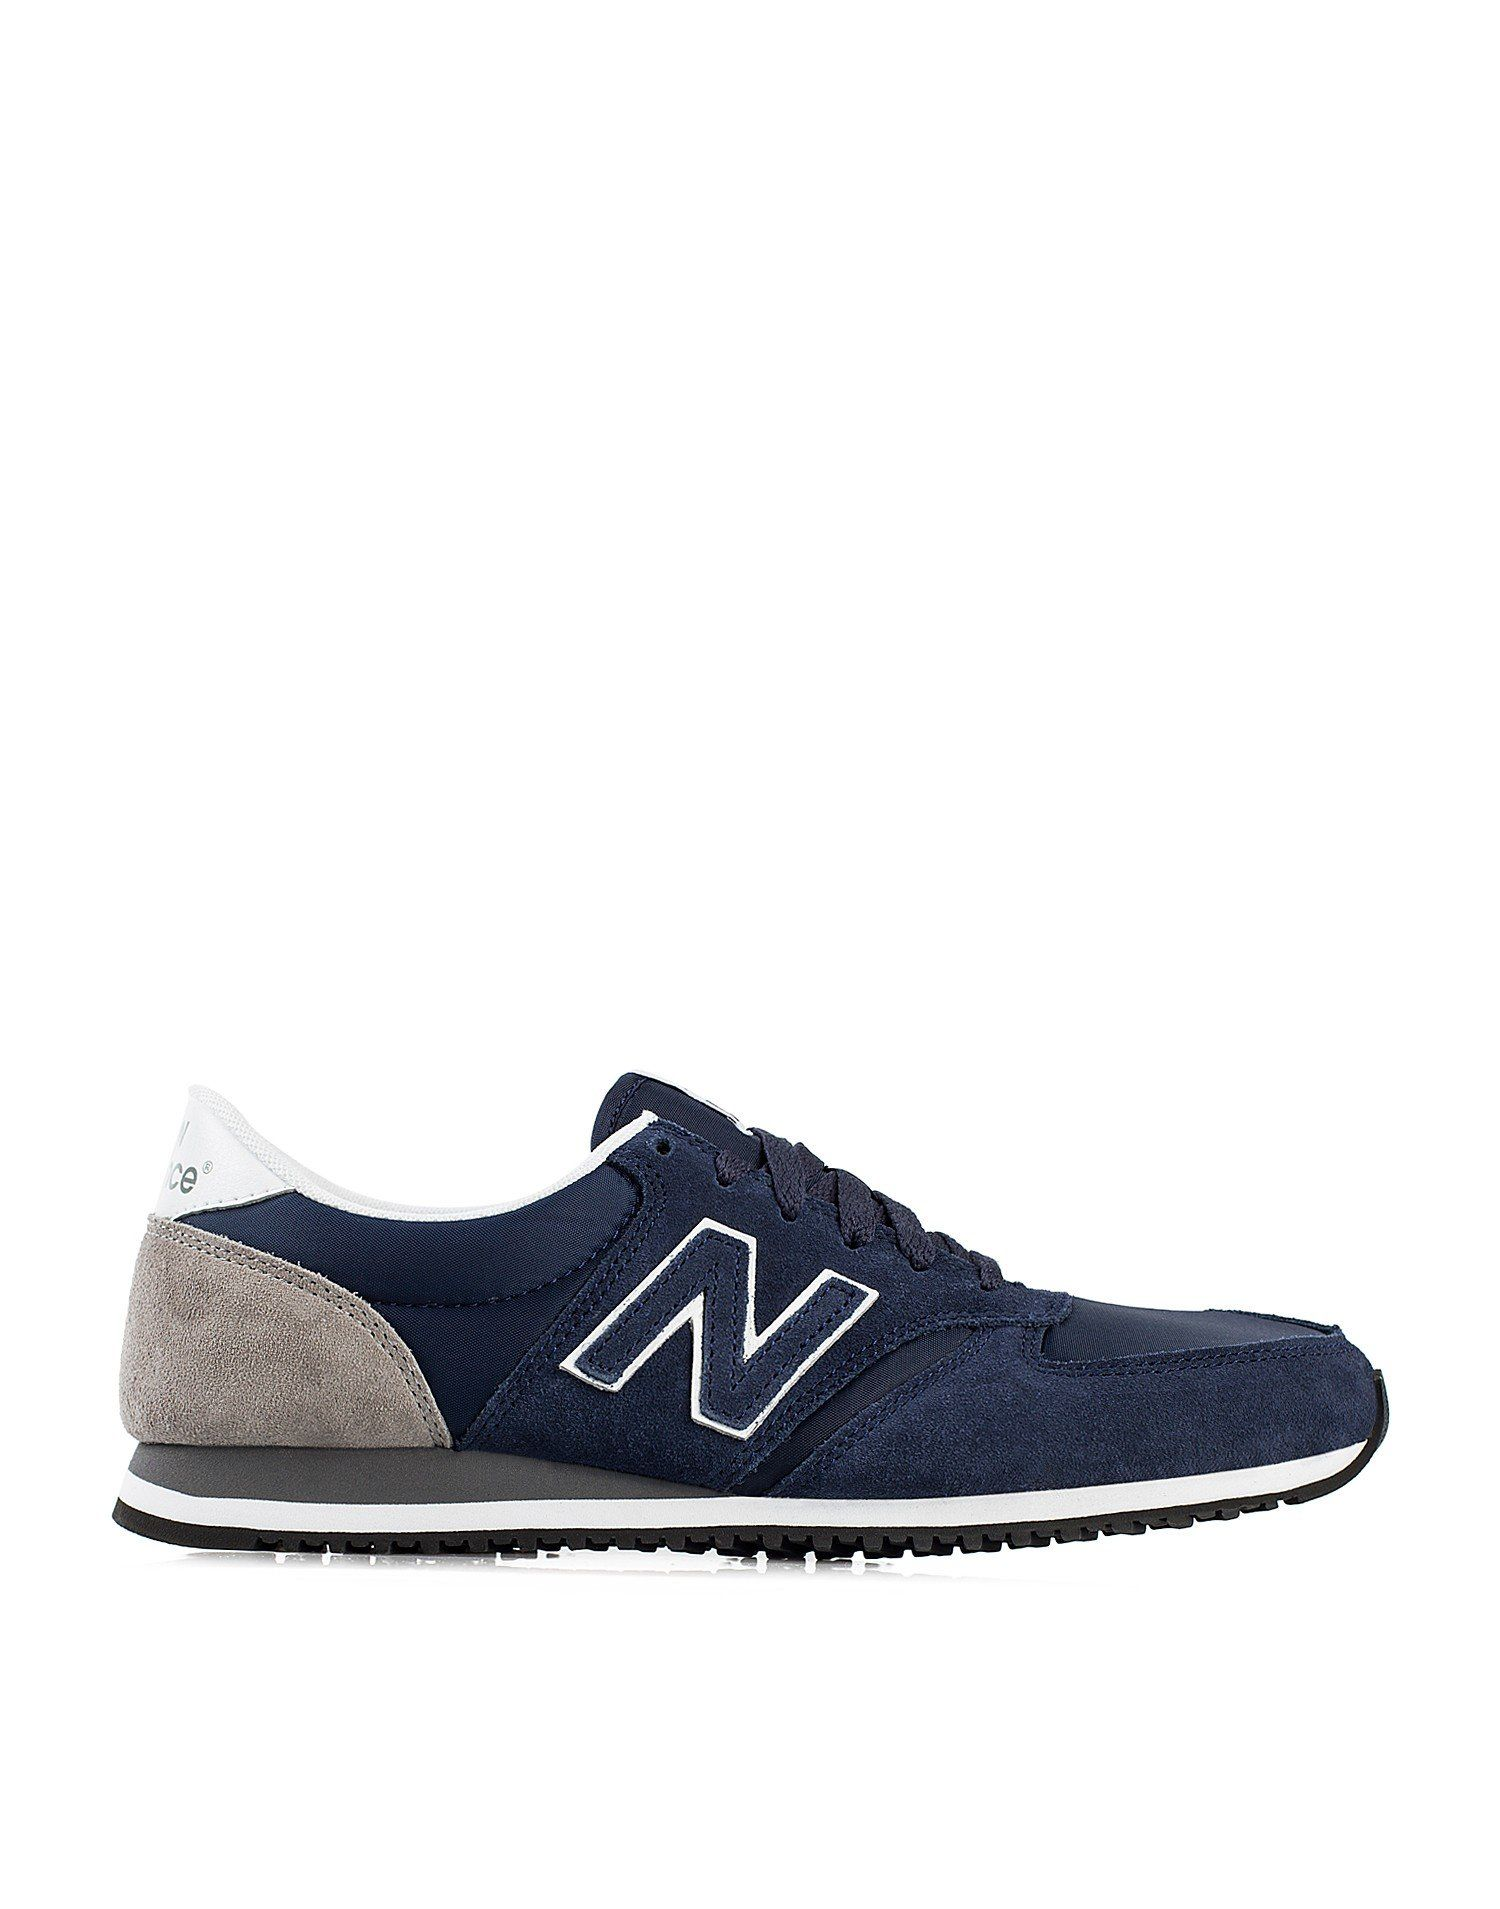 new balance from amazon